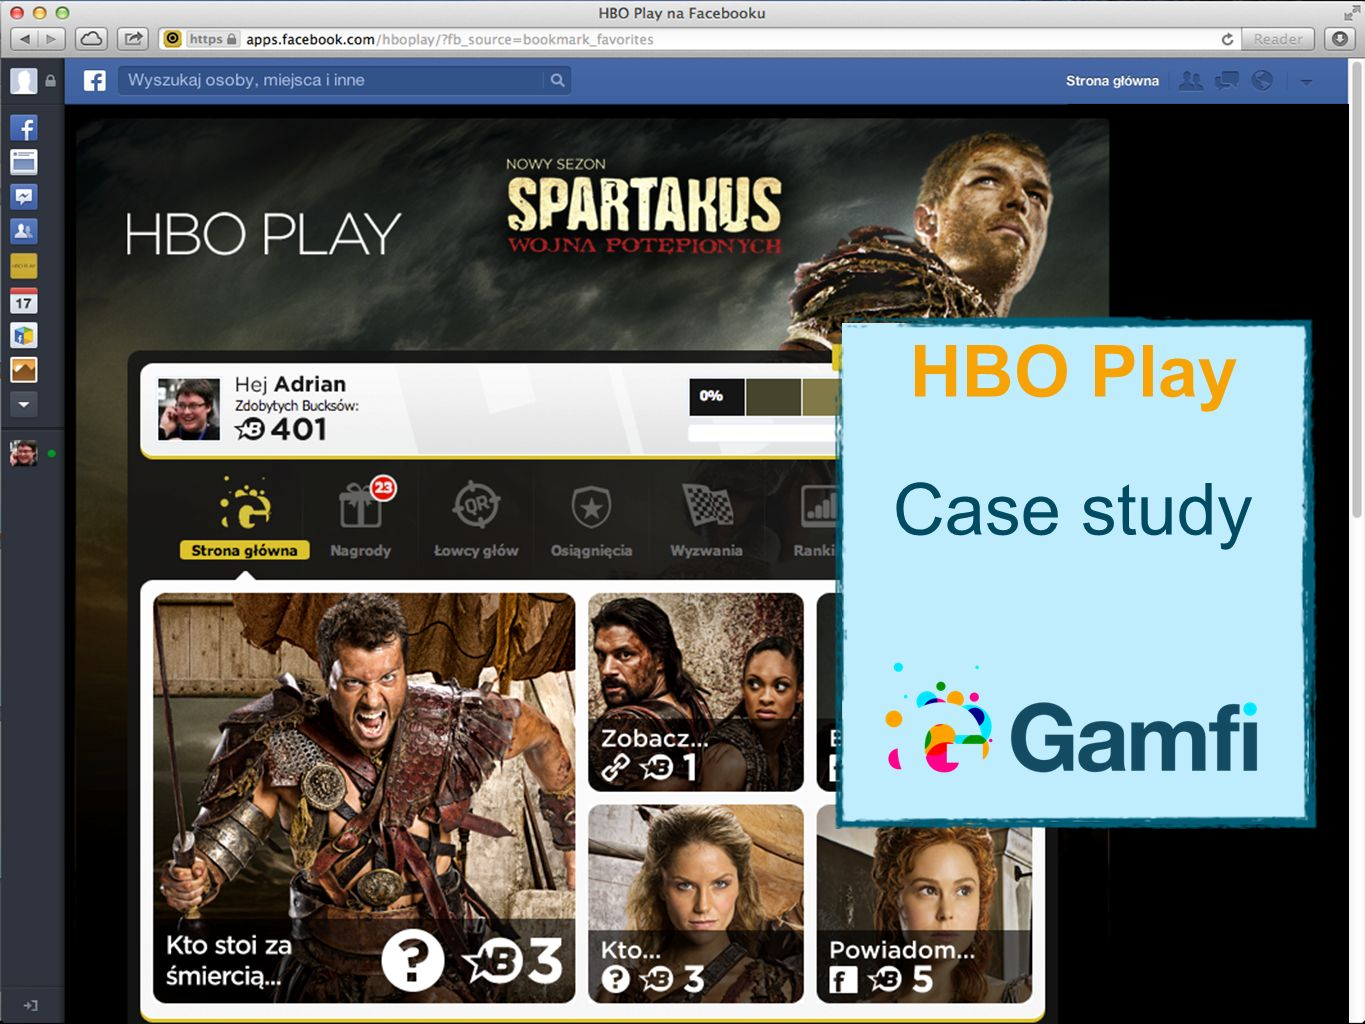 HBO Play Case study